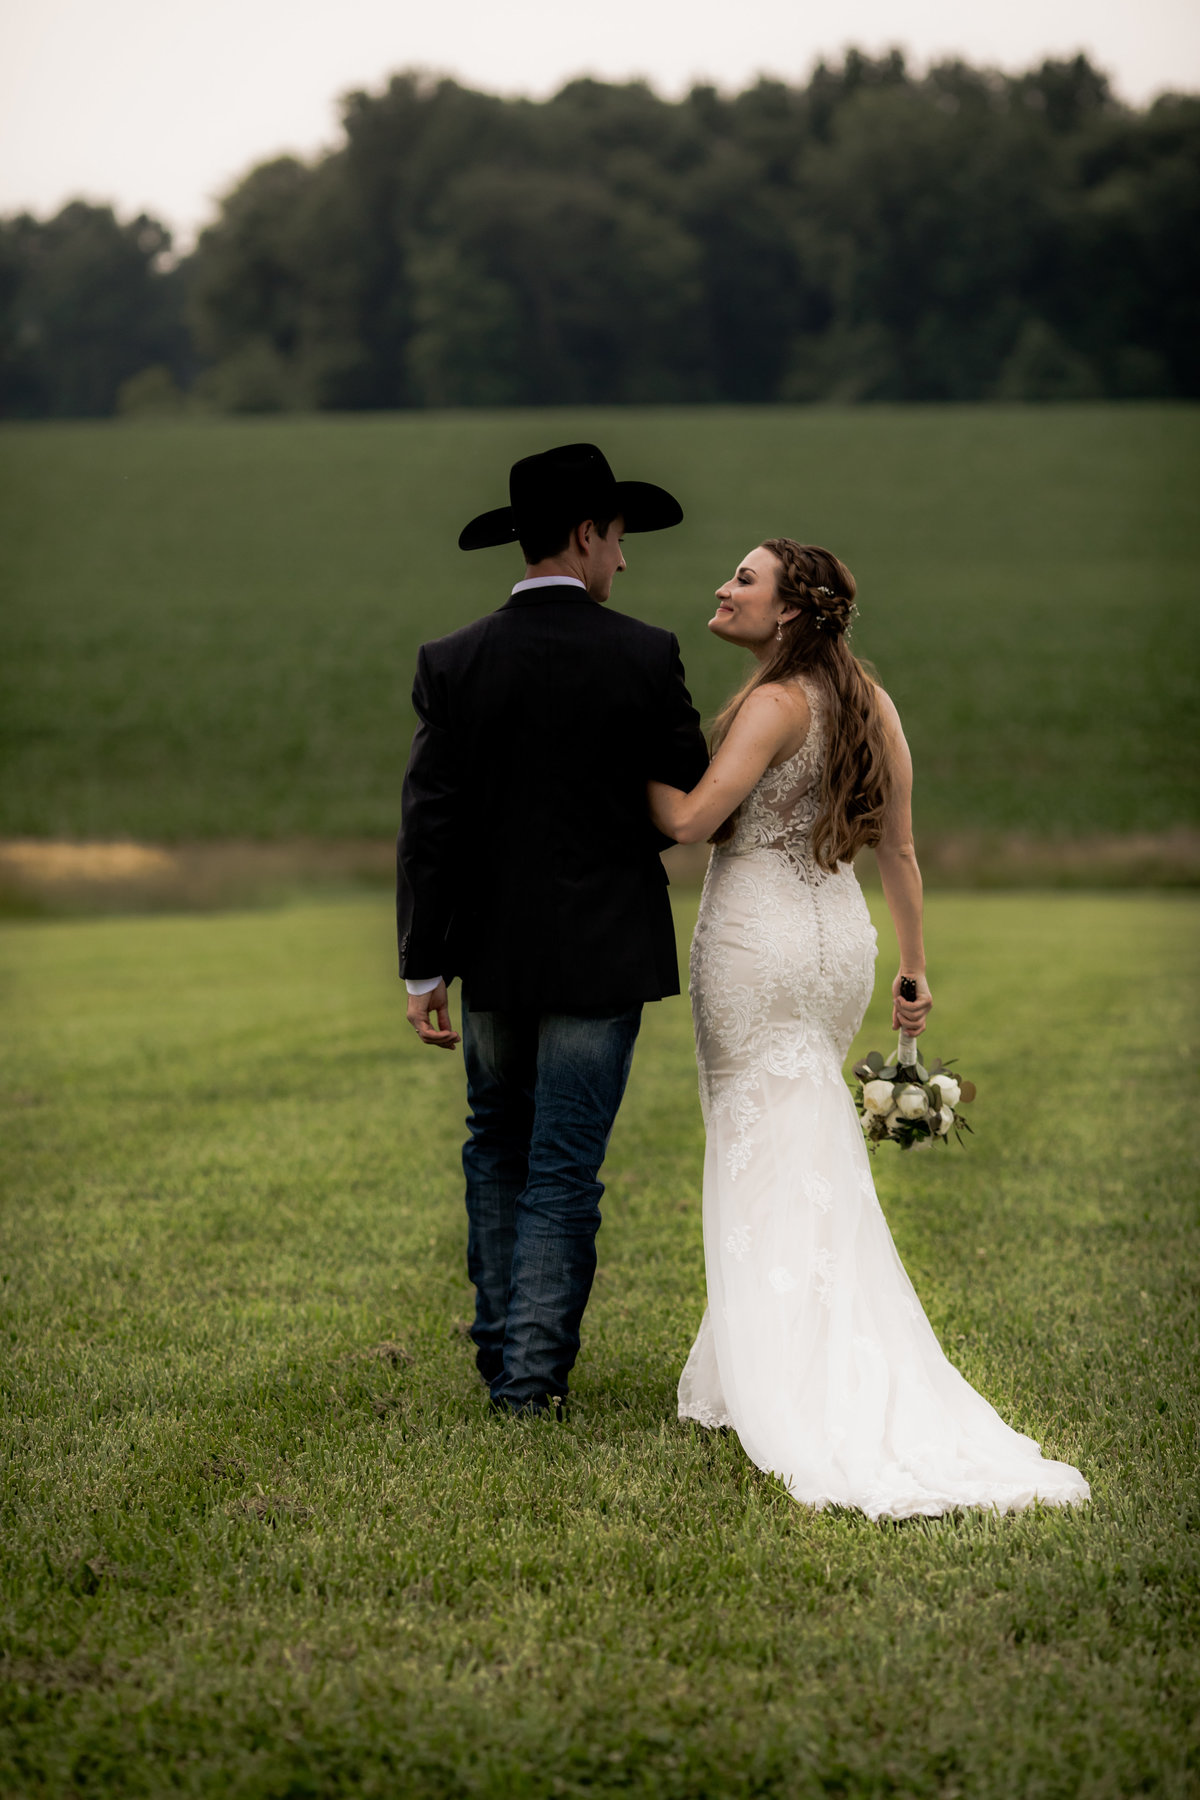 Nsshville Bride - Nashville Brides - The Hayloft Weddings - Tennessee Brides - Kentucky Brides - Southern Brides - Cowboys Wife - Cowboys Bride - Ranch Weddings - Cowboys and Belles062